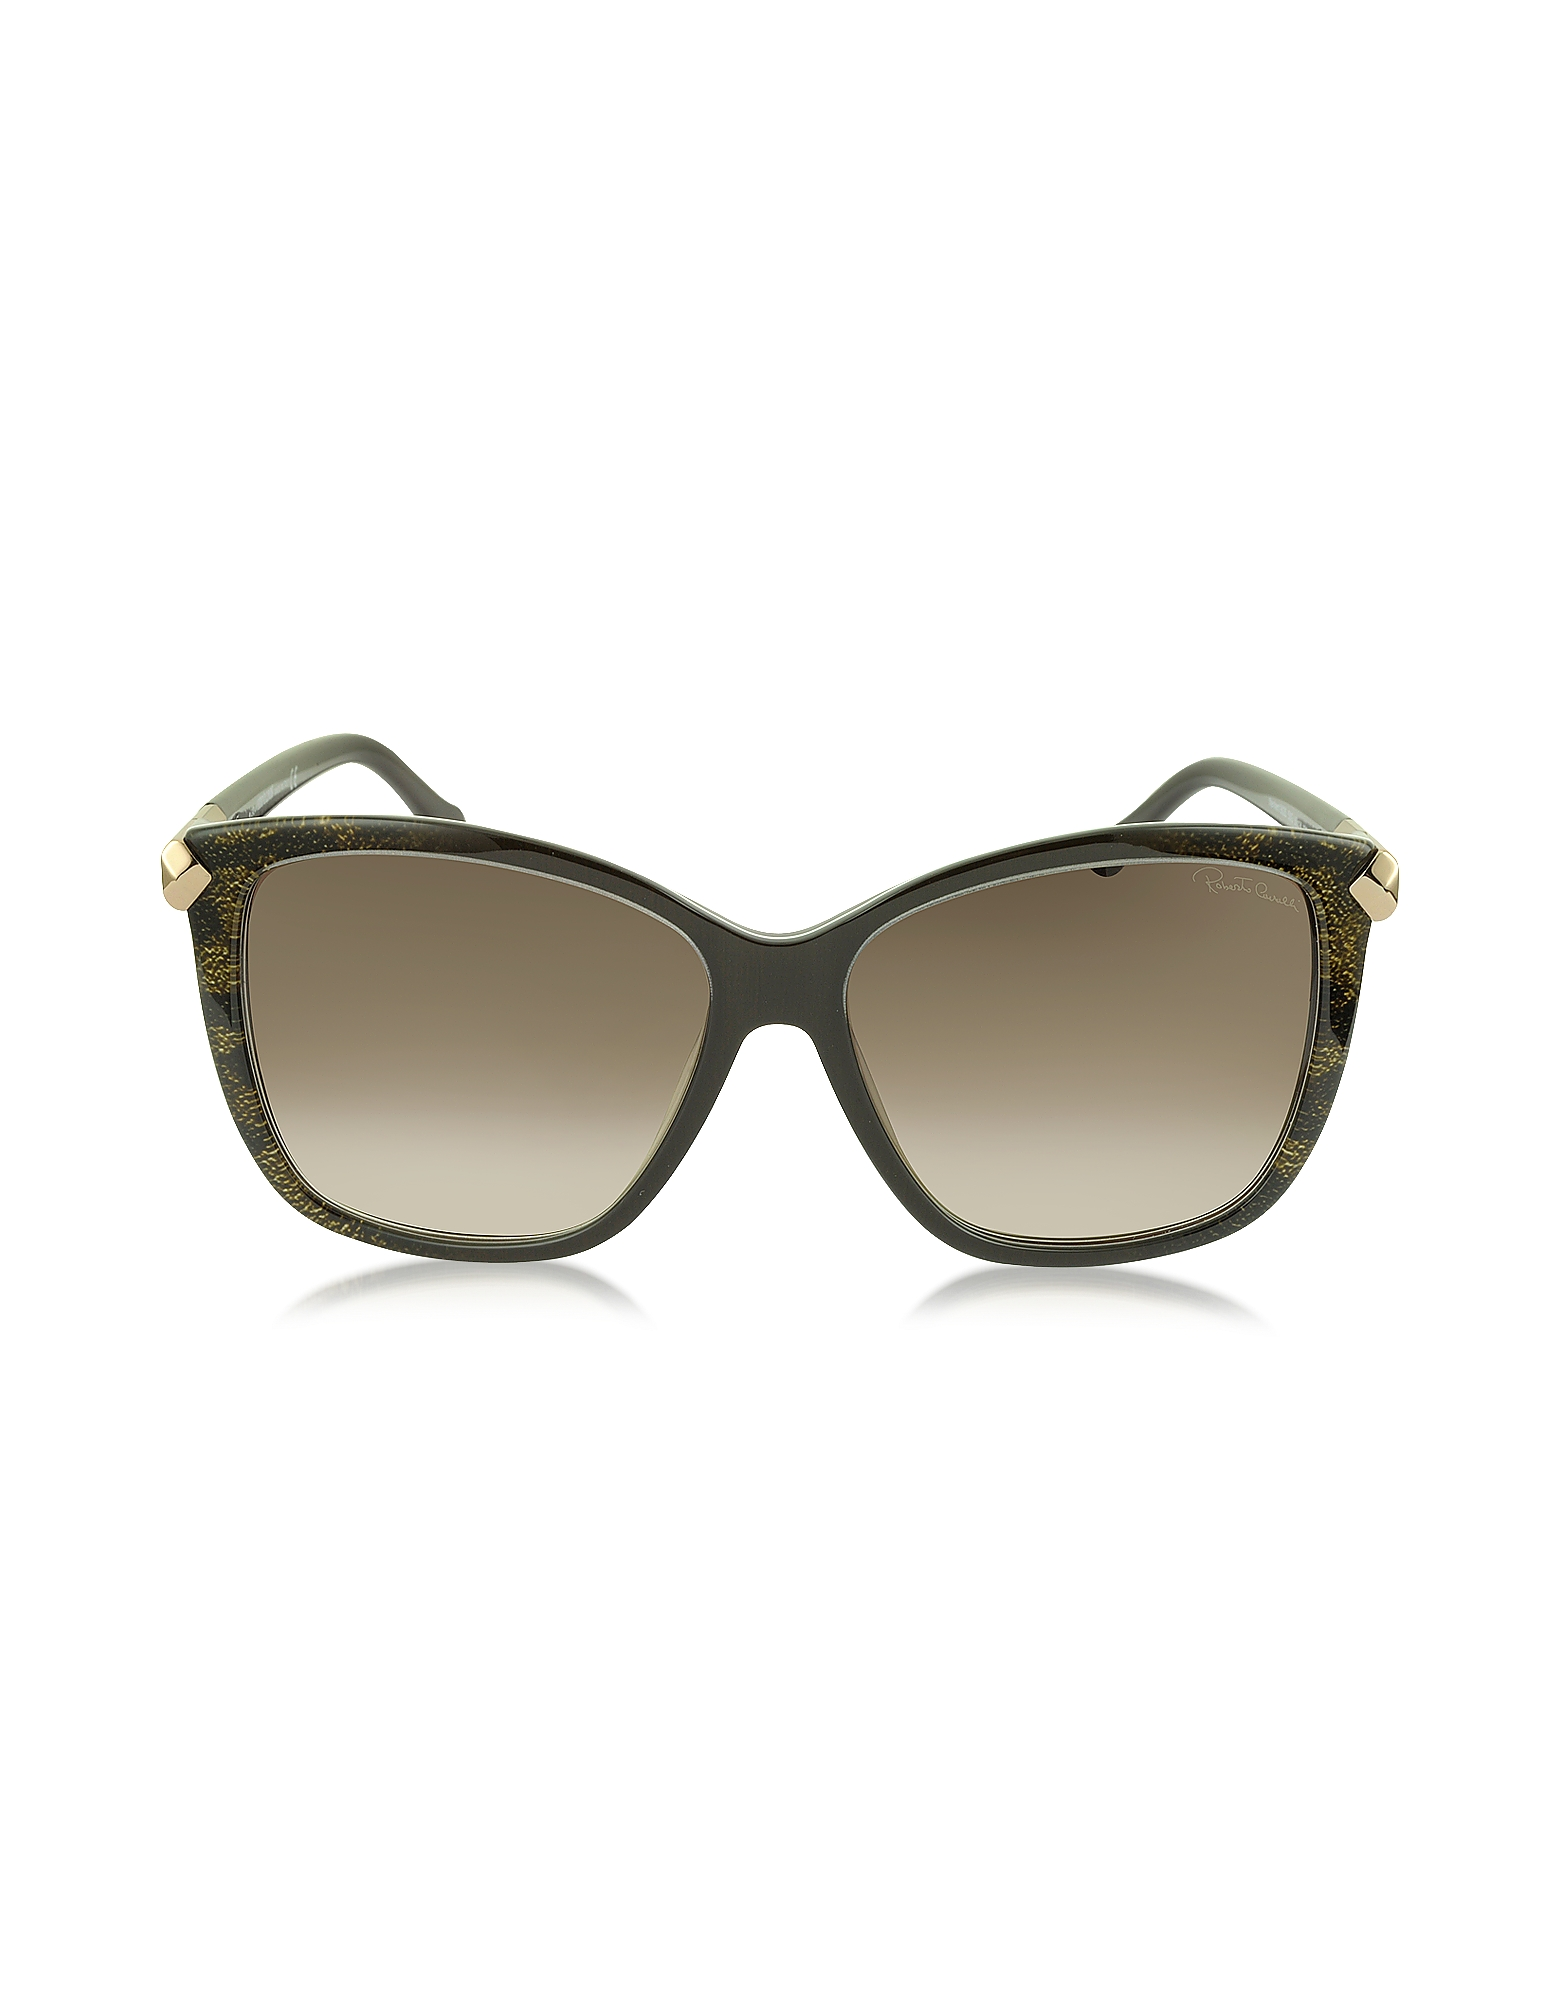 Roberto Cavalli Sunglasses, Menkent 902S 50G Brown Snake Print Cat Eye Sunglasses w/Goldtone Details